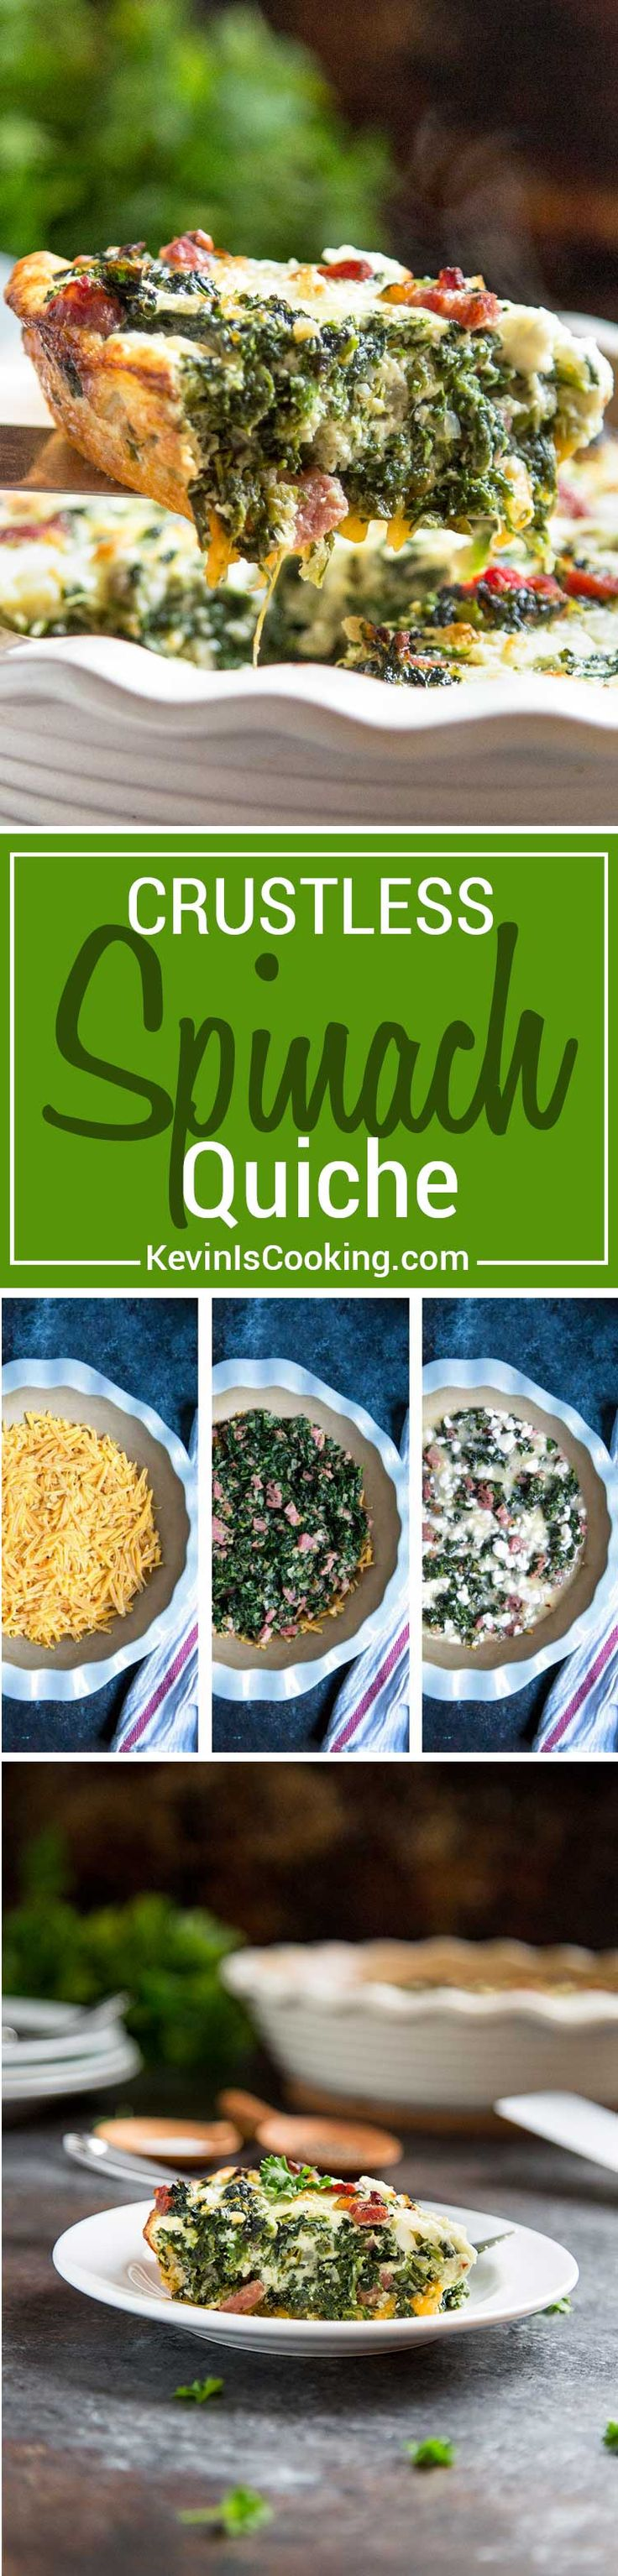 Perfect for the holiday breakfast table! A healthy alternate to atraditional quiche with crust, this Crustless Spinach Quiche with Ham is packed with spinach, cheeses and ham for that lighter breakfast touch. via @keviniscooking